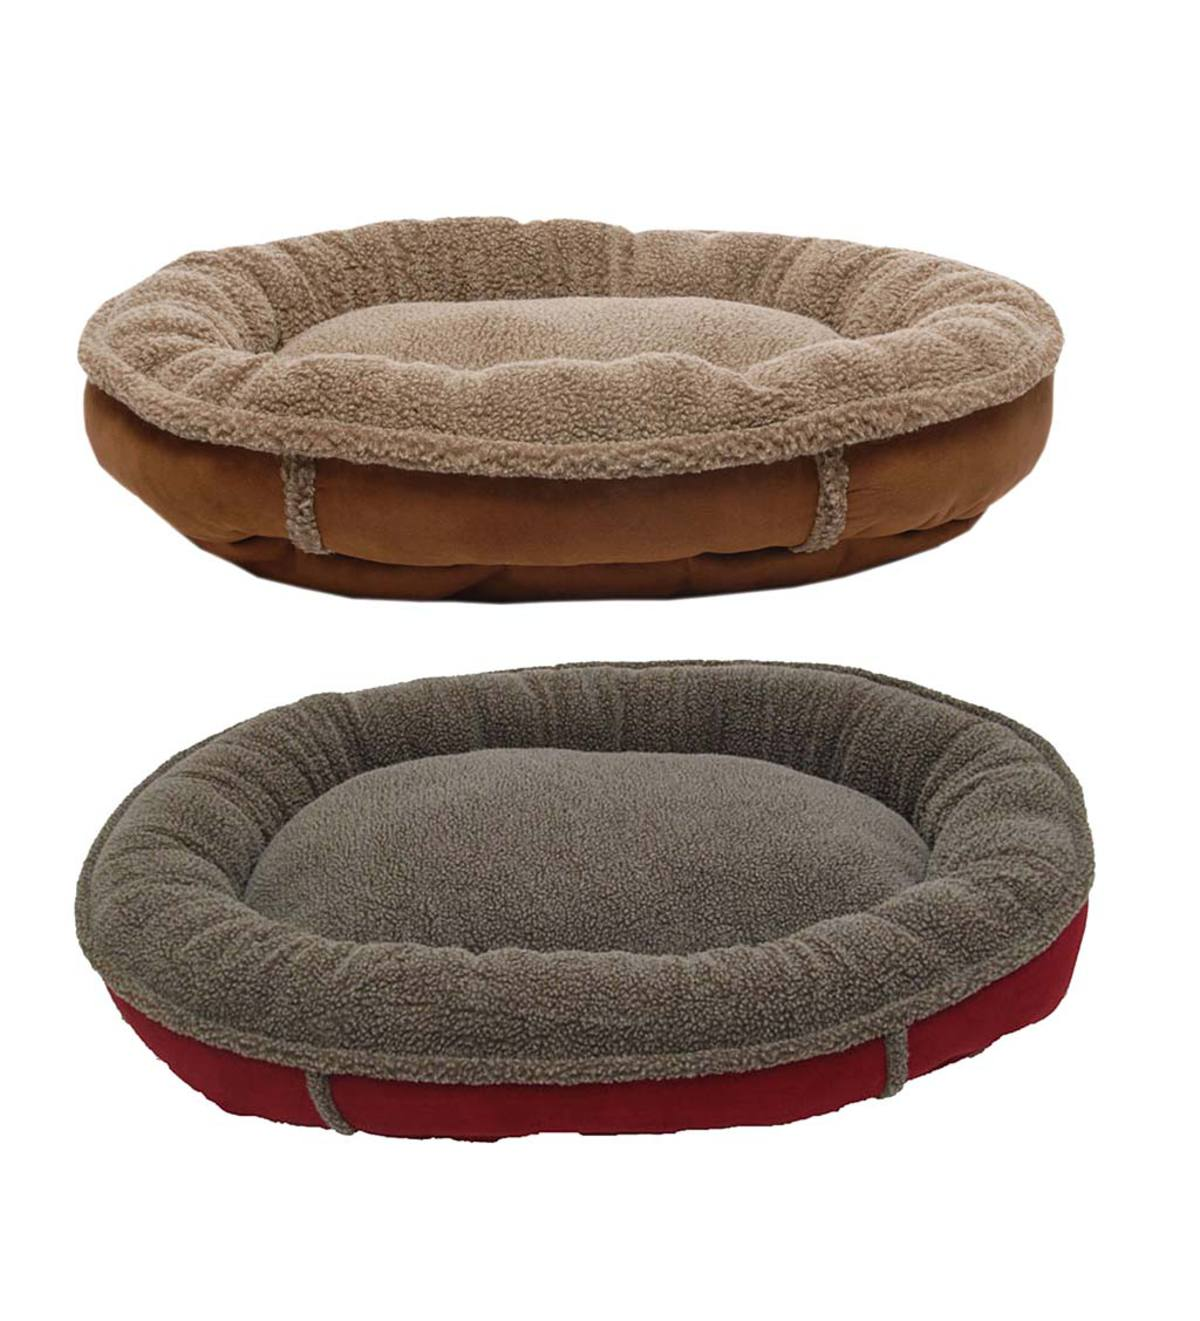 Round Comfy Cup Pet Bed, Large